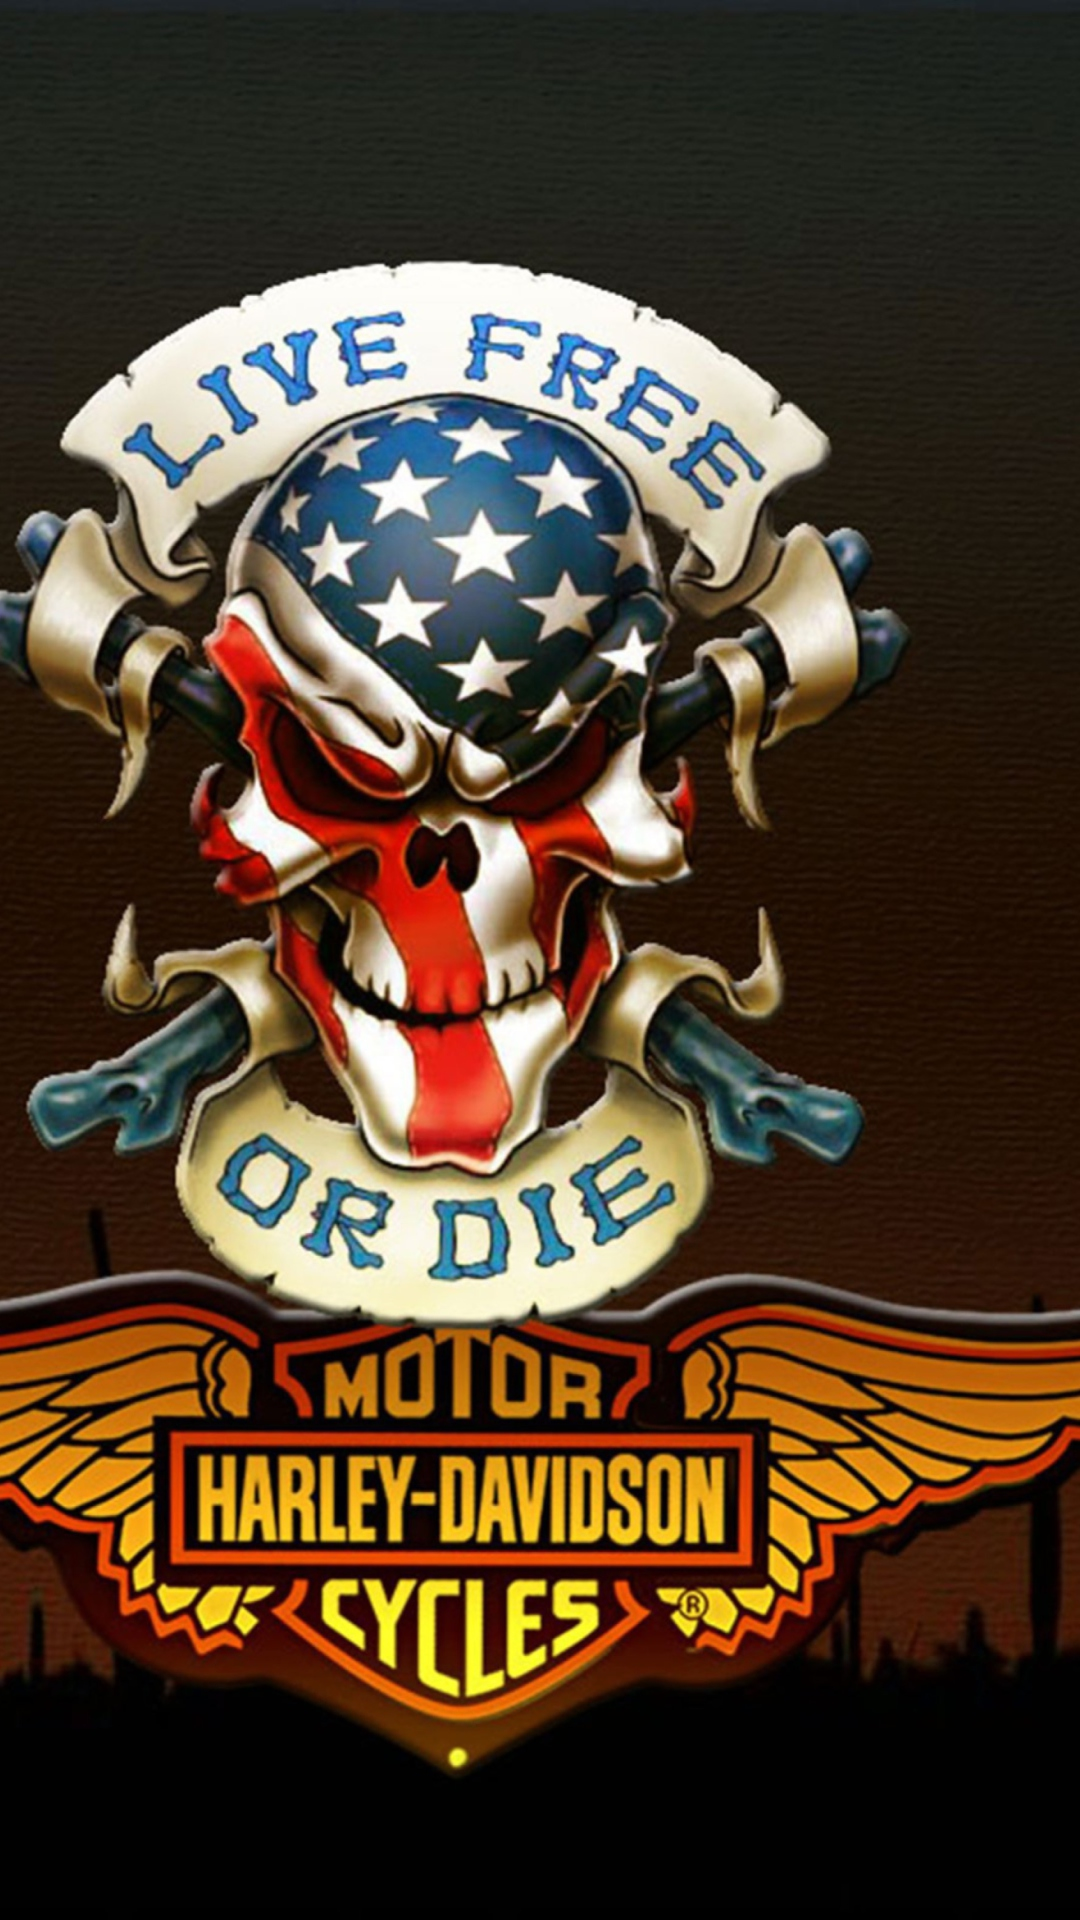 Harley Davidson Iphone Hd Wallpapers Pic Mch071181 Dzbc Org